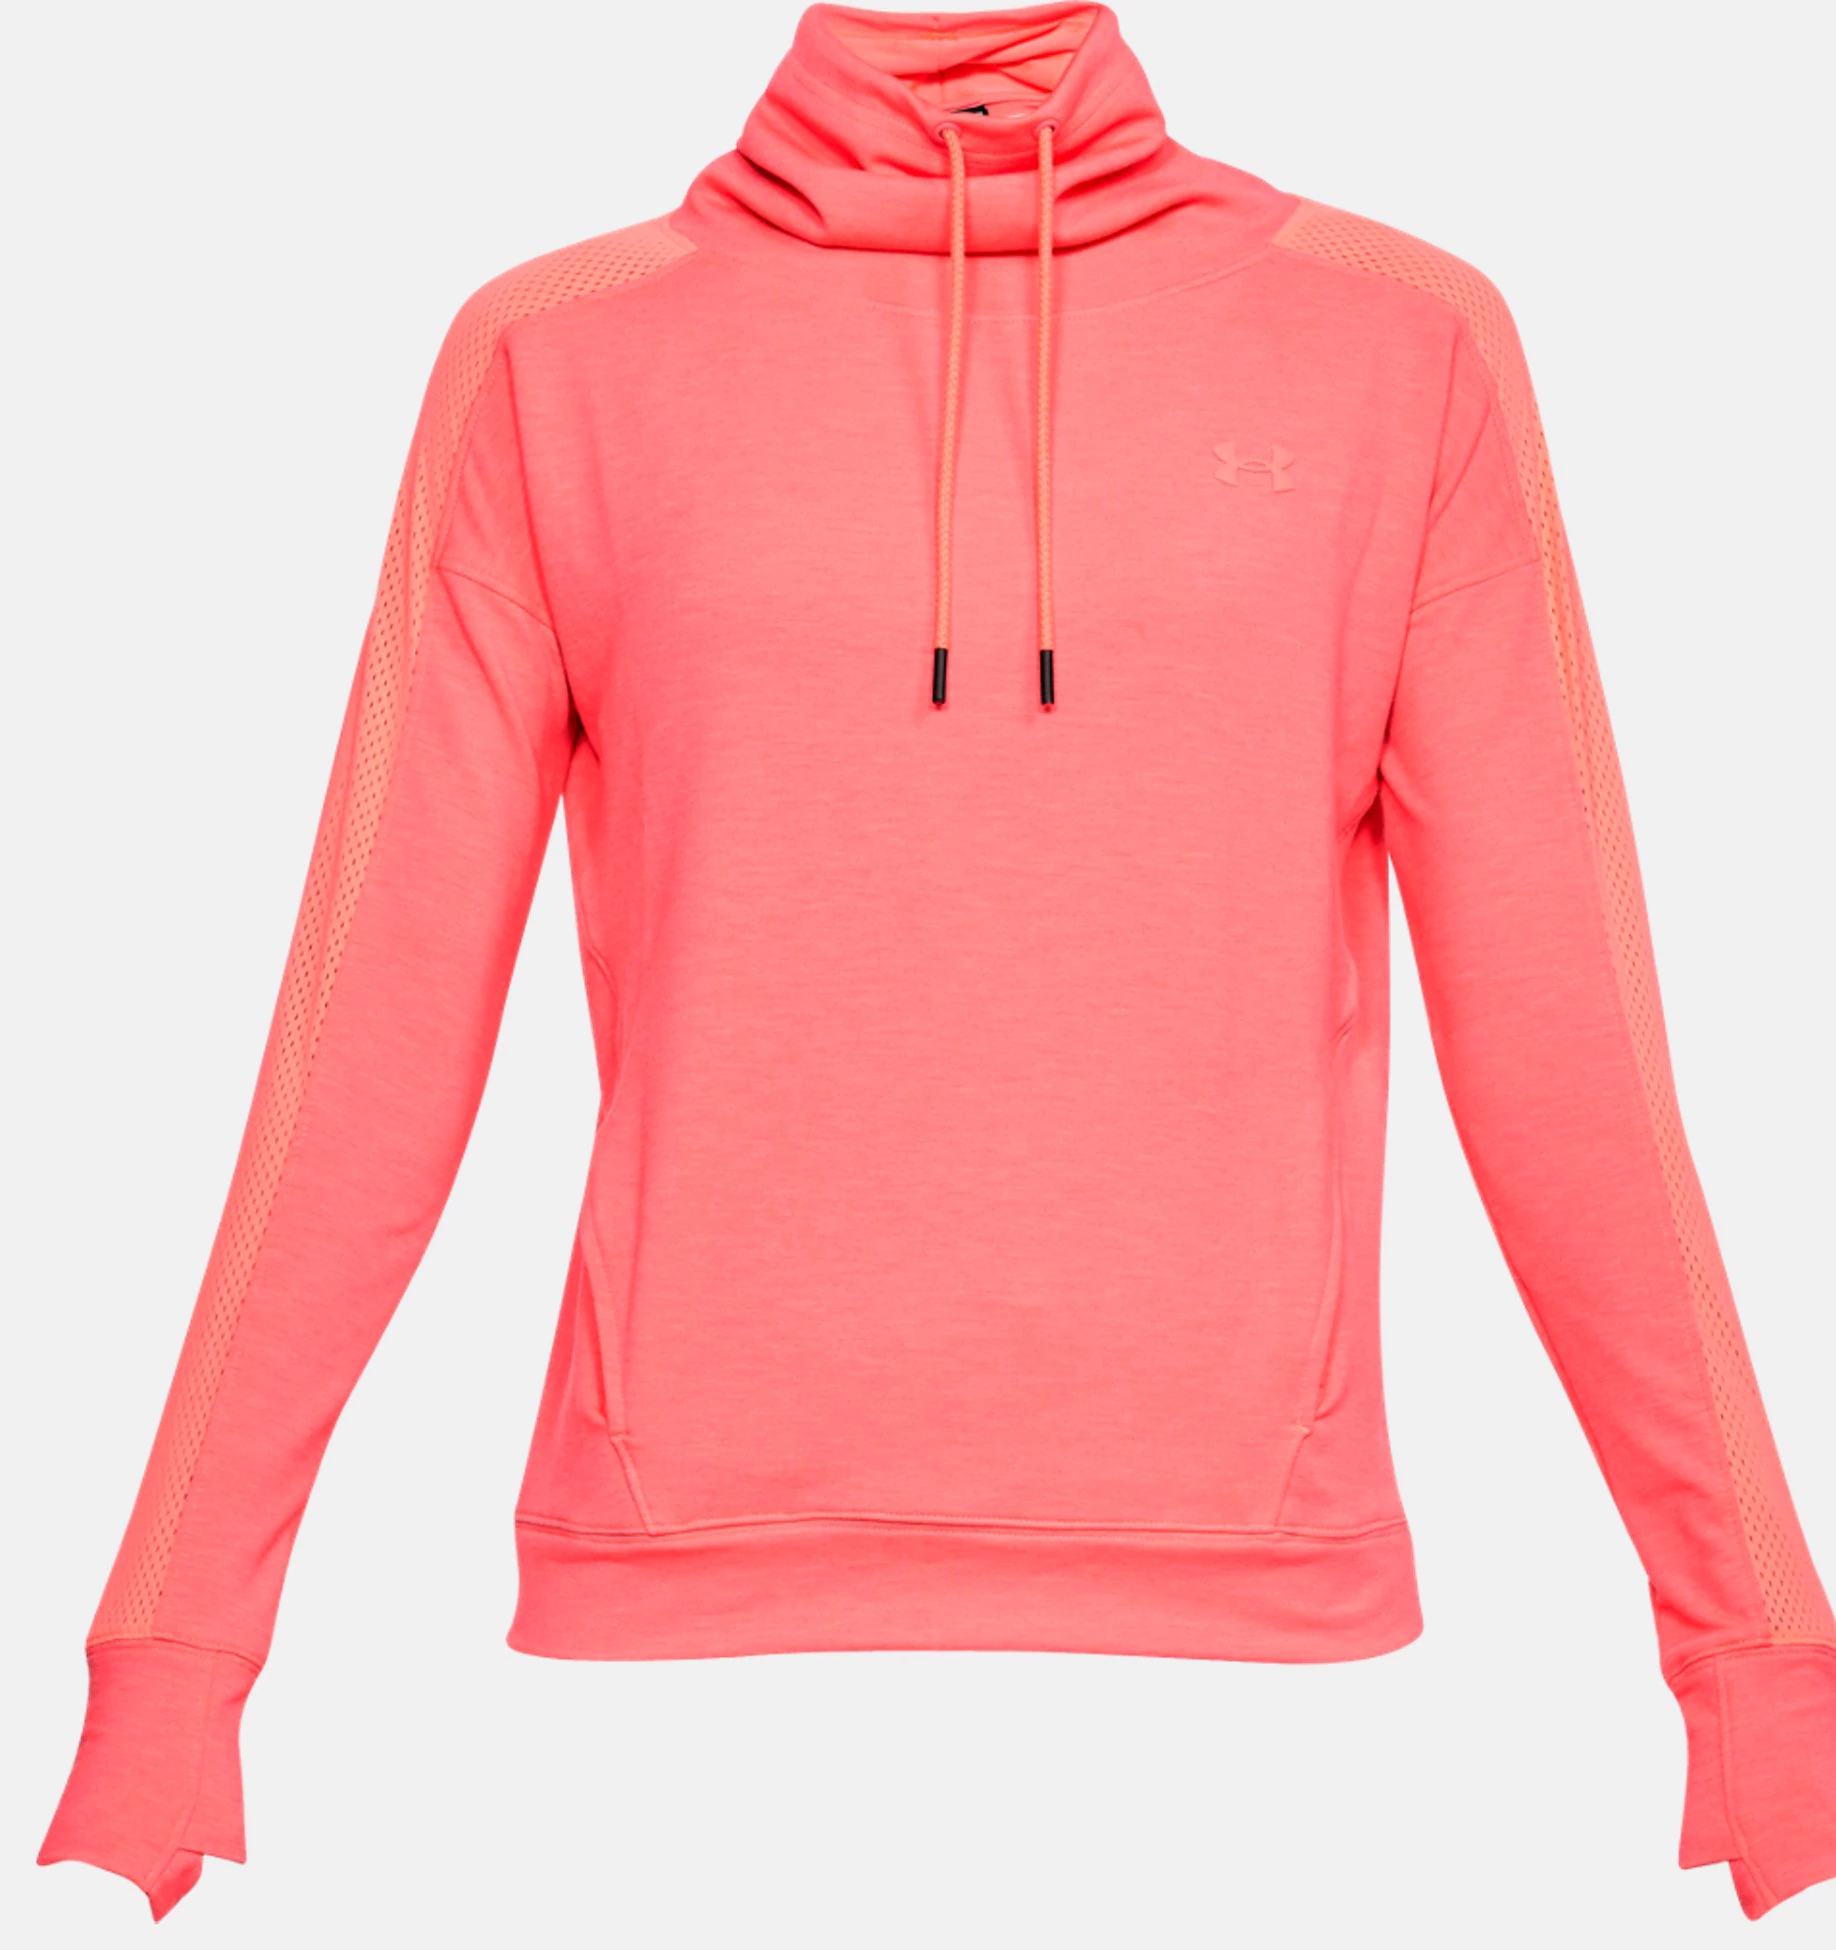 Under Armour Fleece mikina, ružová